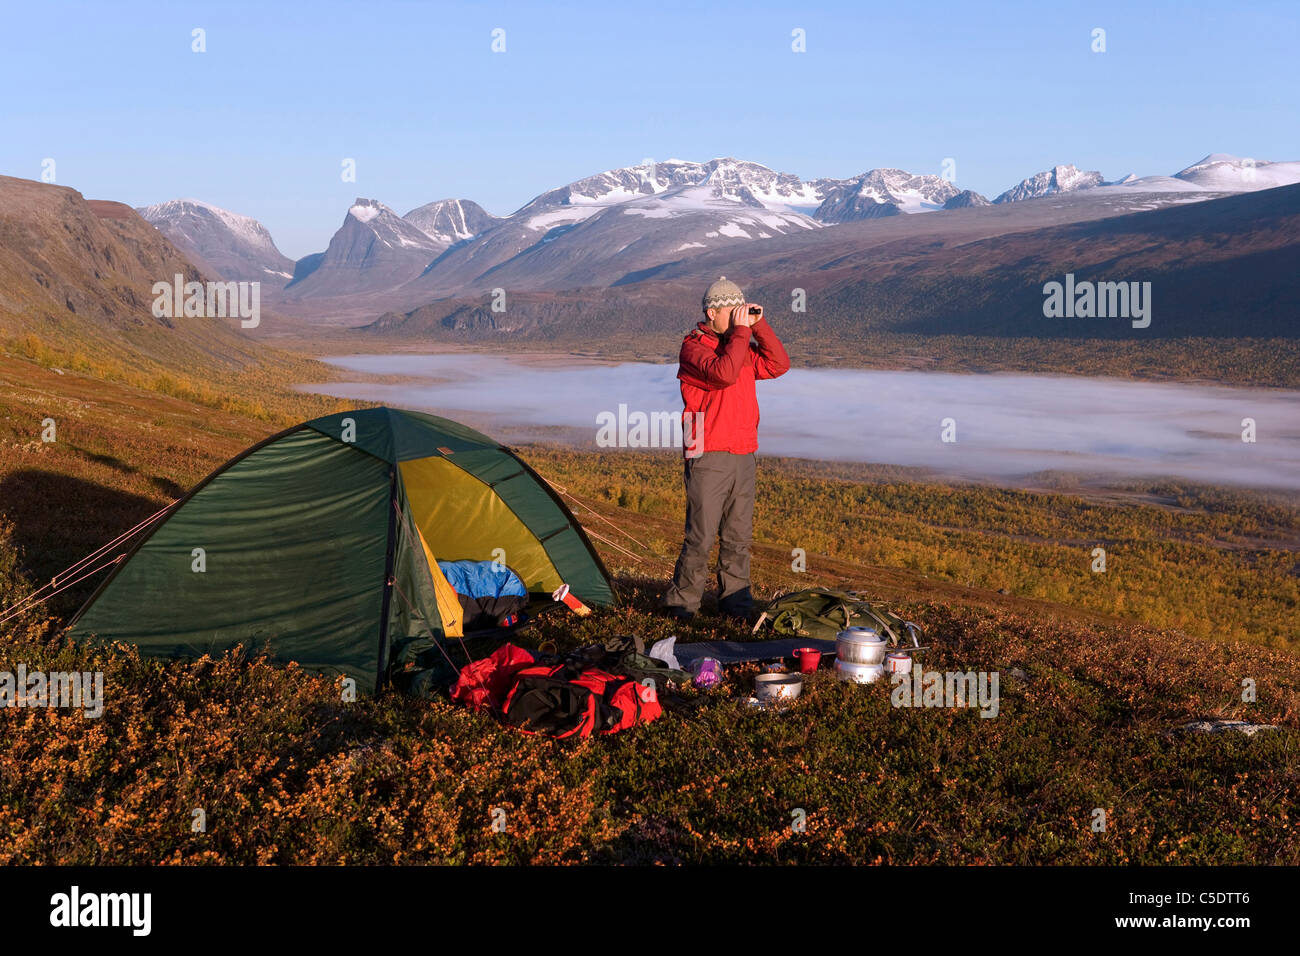 Hiker with binoculars by tent and fog on landscape with Kebnekaise against sky at Lapland, Sweden - Stock Image